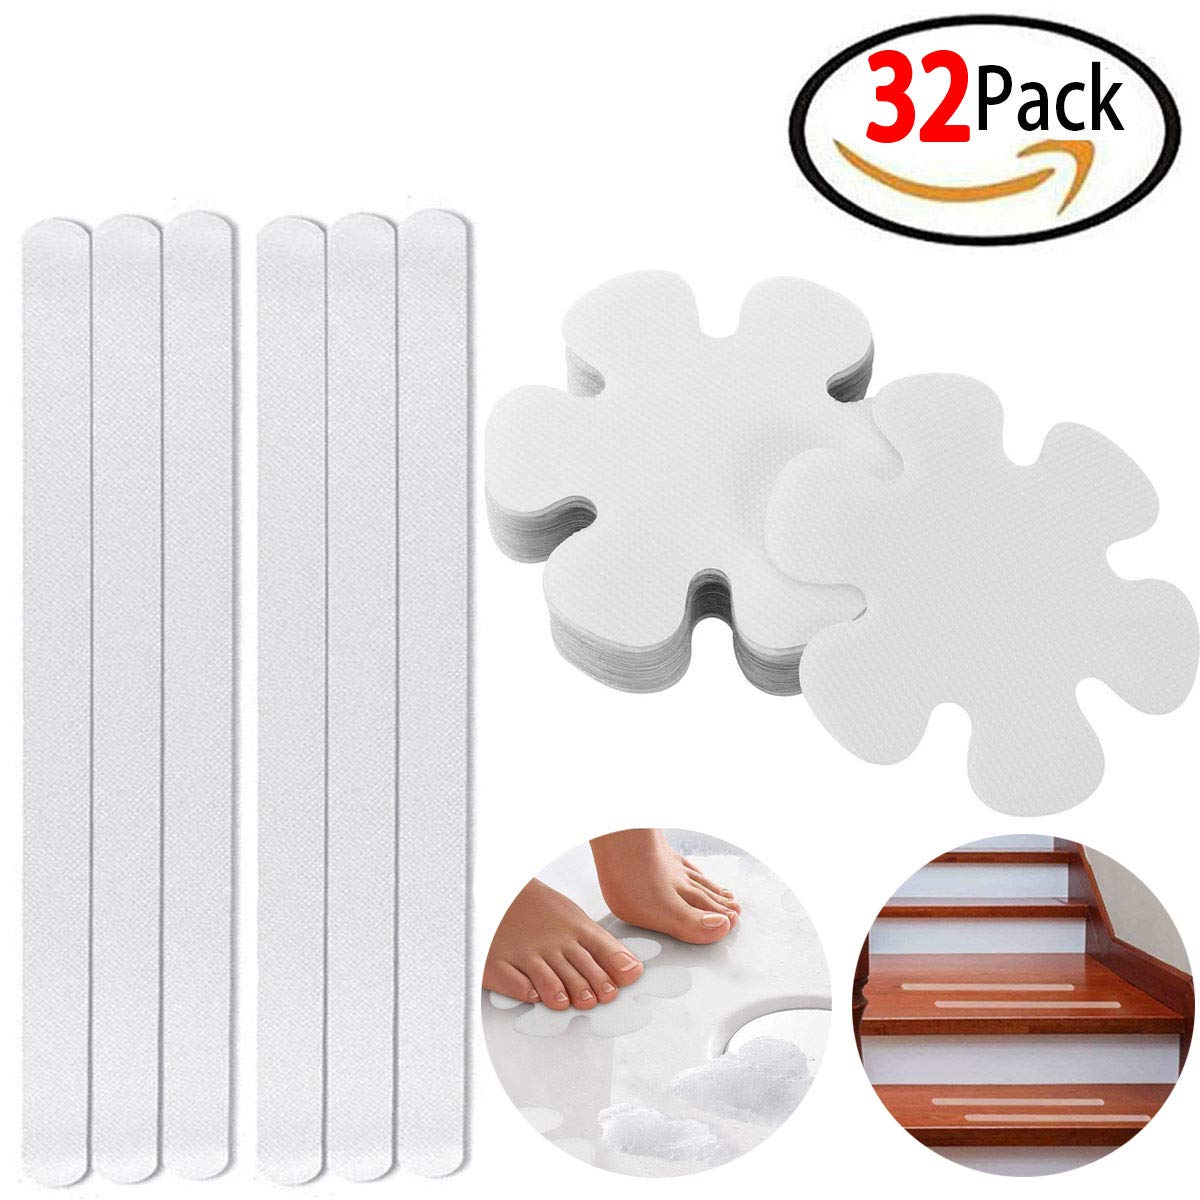 Set of 32, Non-Slip Traction to Tubs, Anti-Slip Bathtub Stickers, Safety Shower Treads, Adhesive Bath Safety Treads, Non-Toxic PEVA Anti-Slip Stickers for Showers, Pools, Boats, Tubs, Stairs & More Originalidad